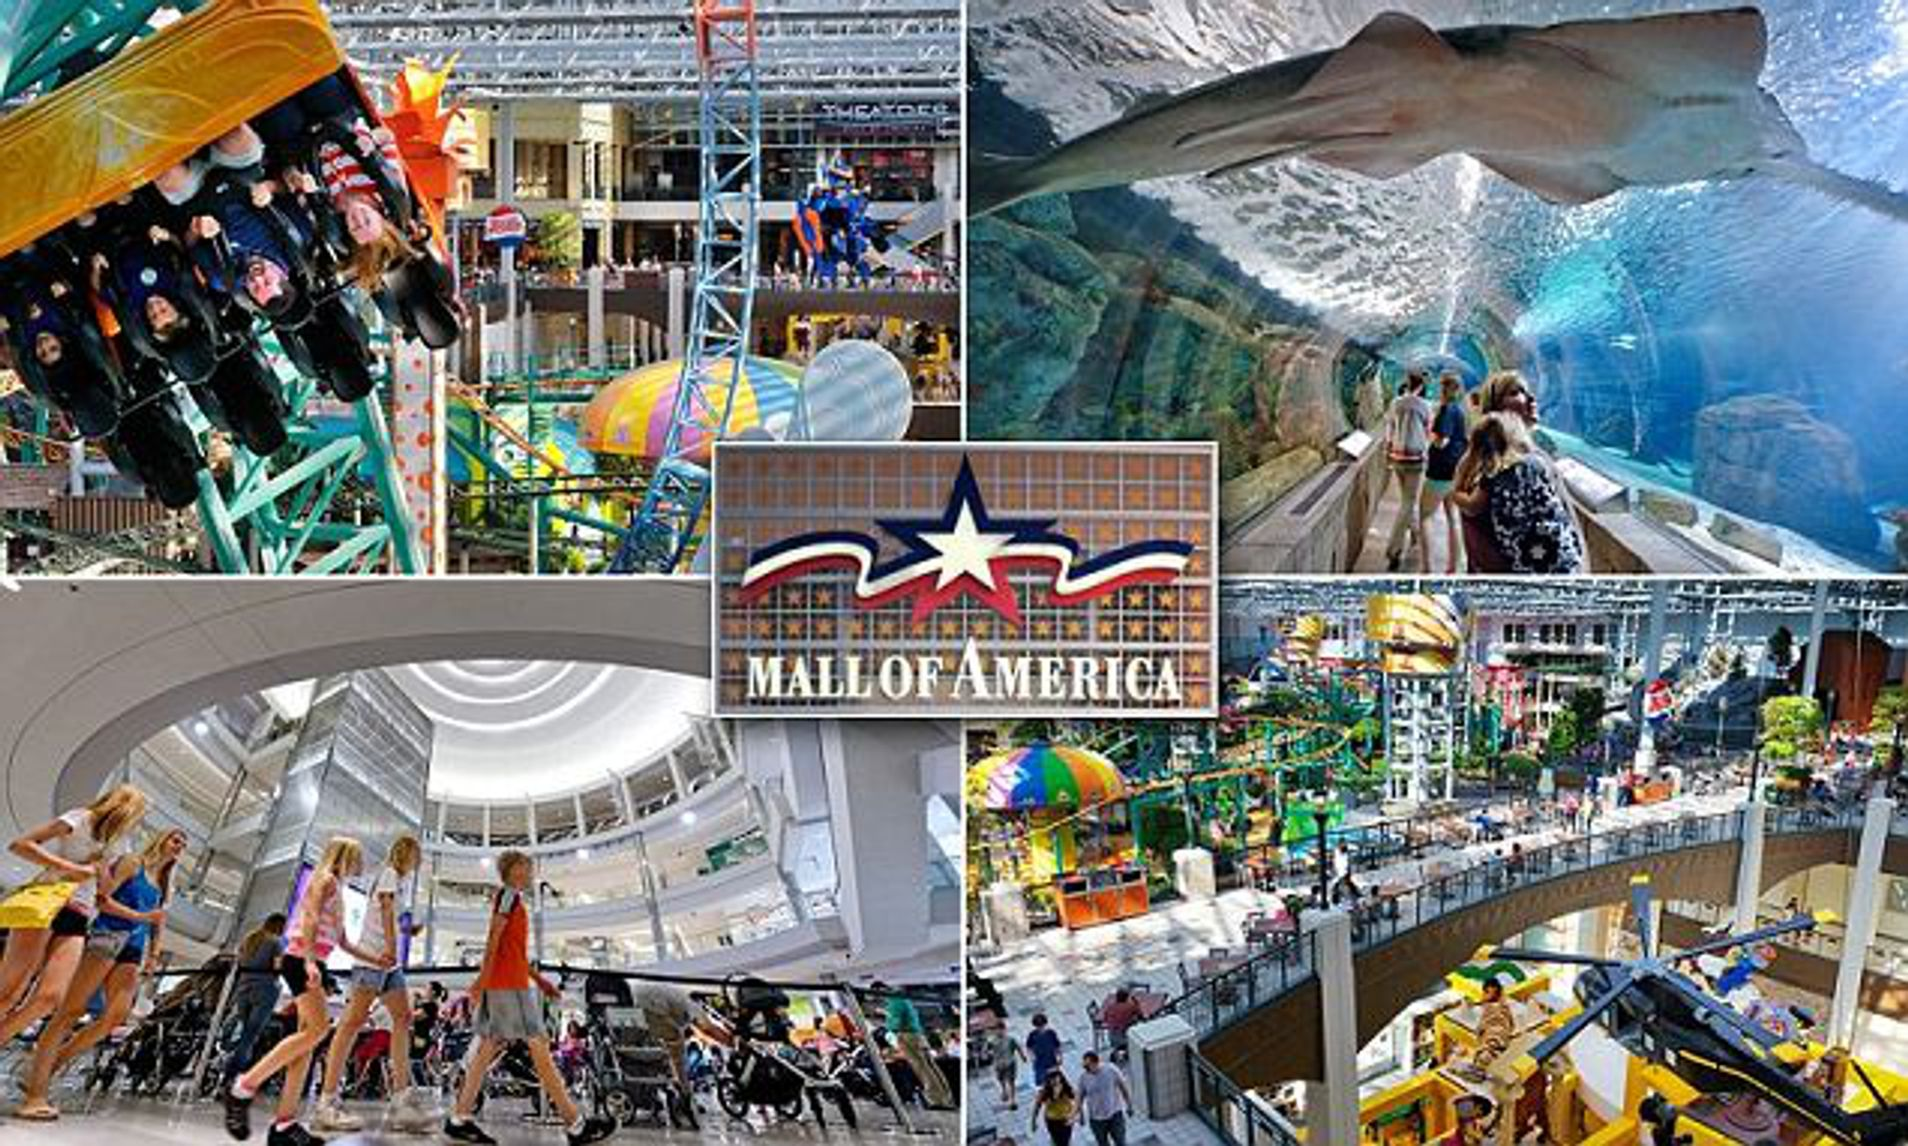 Inside The Mall Of America Rollercoasters Sharks And Even Weddings Daily Mail Online